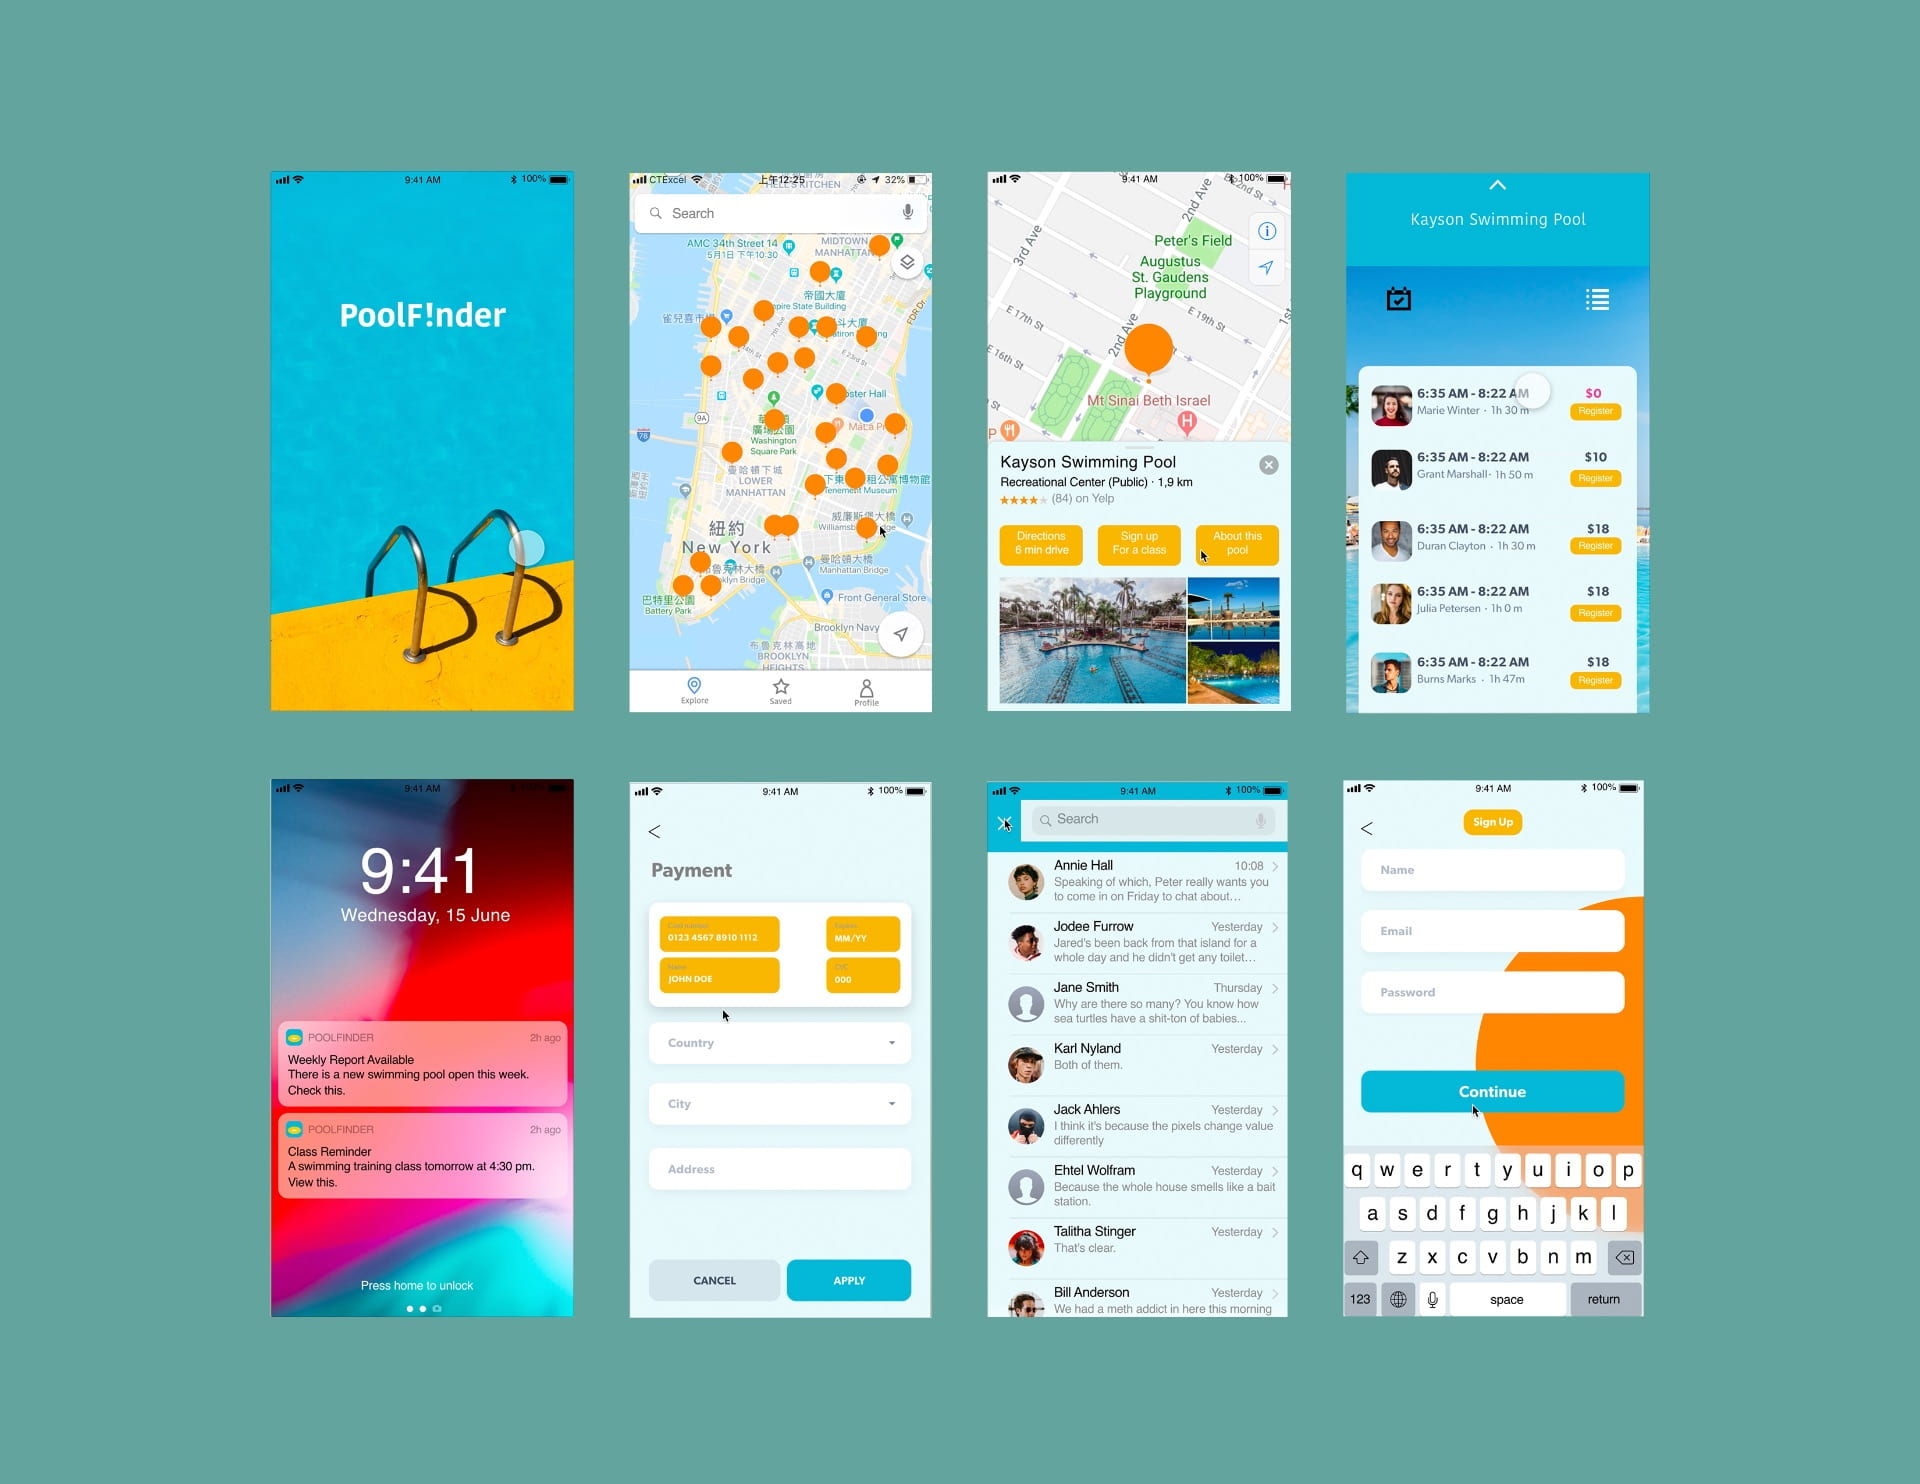 """PoolFinder"": a service design product aiming to assist people to find available swimming pool nearby"